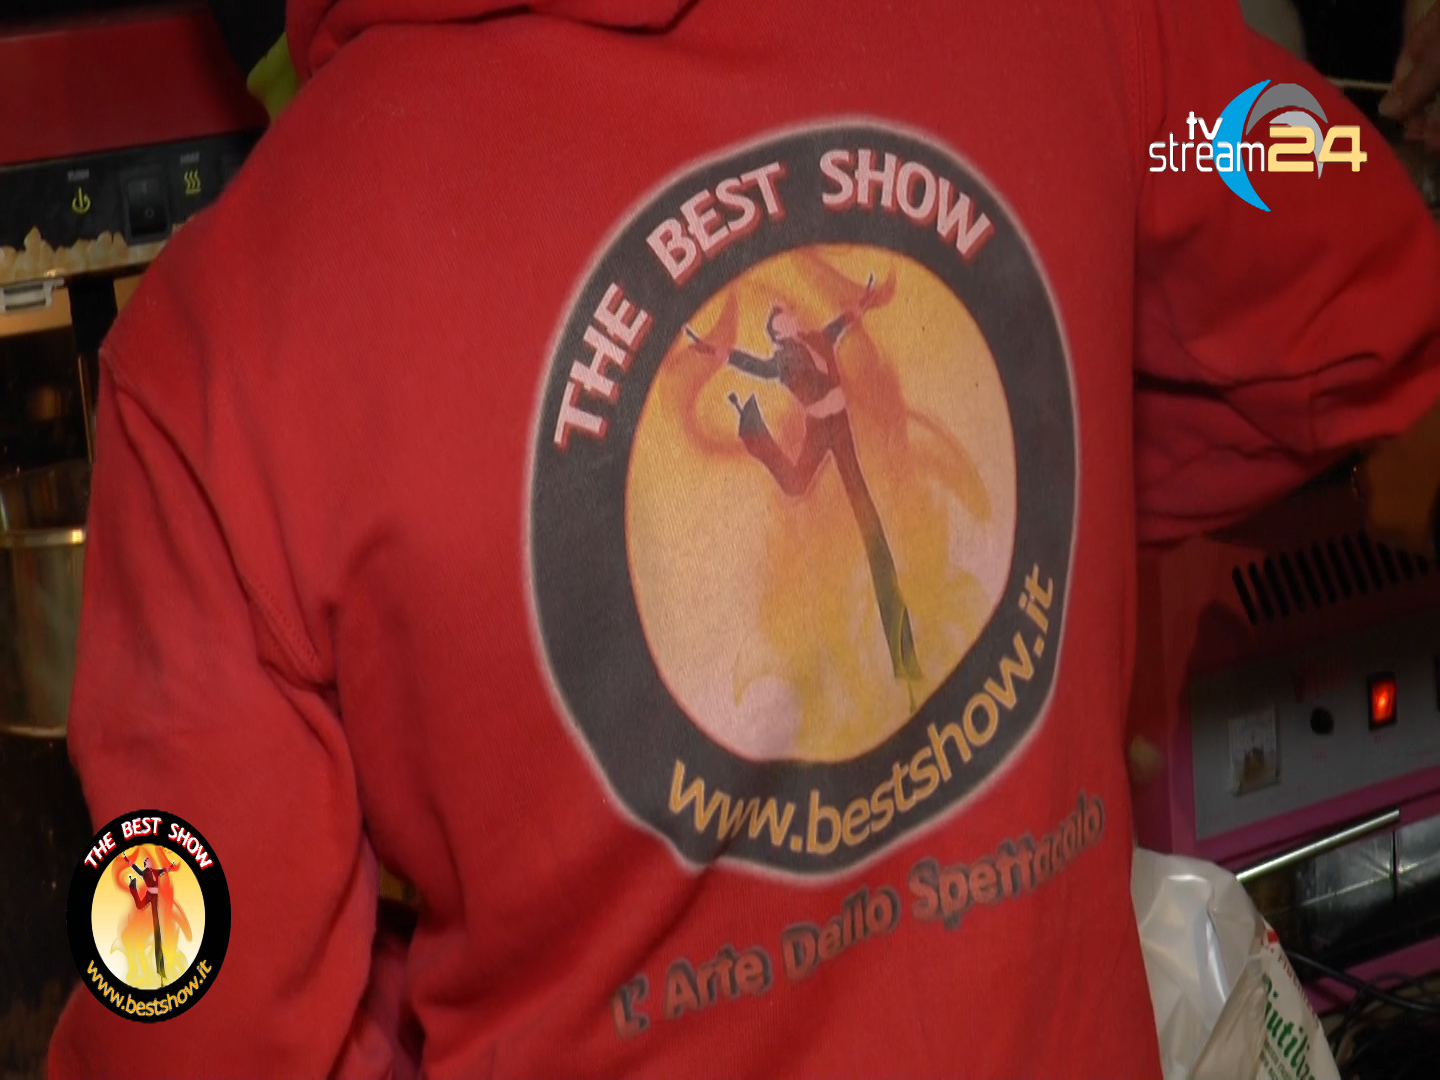 The Best Show19 12 2015.Immagine002